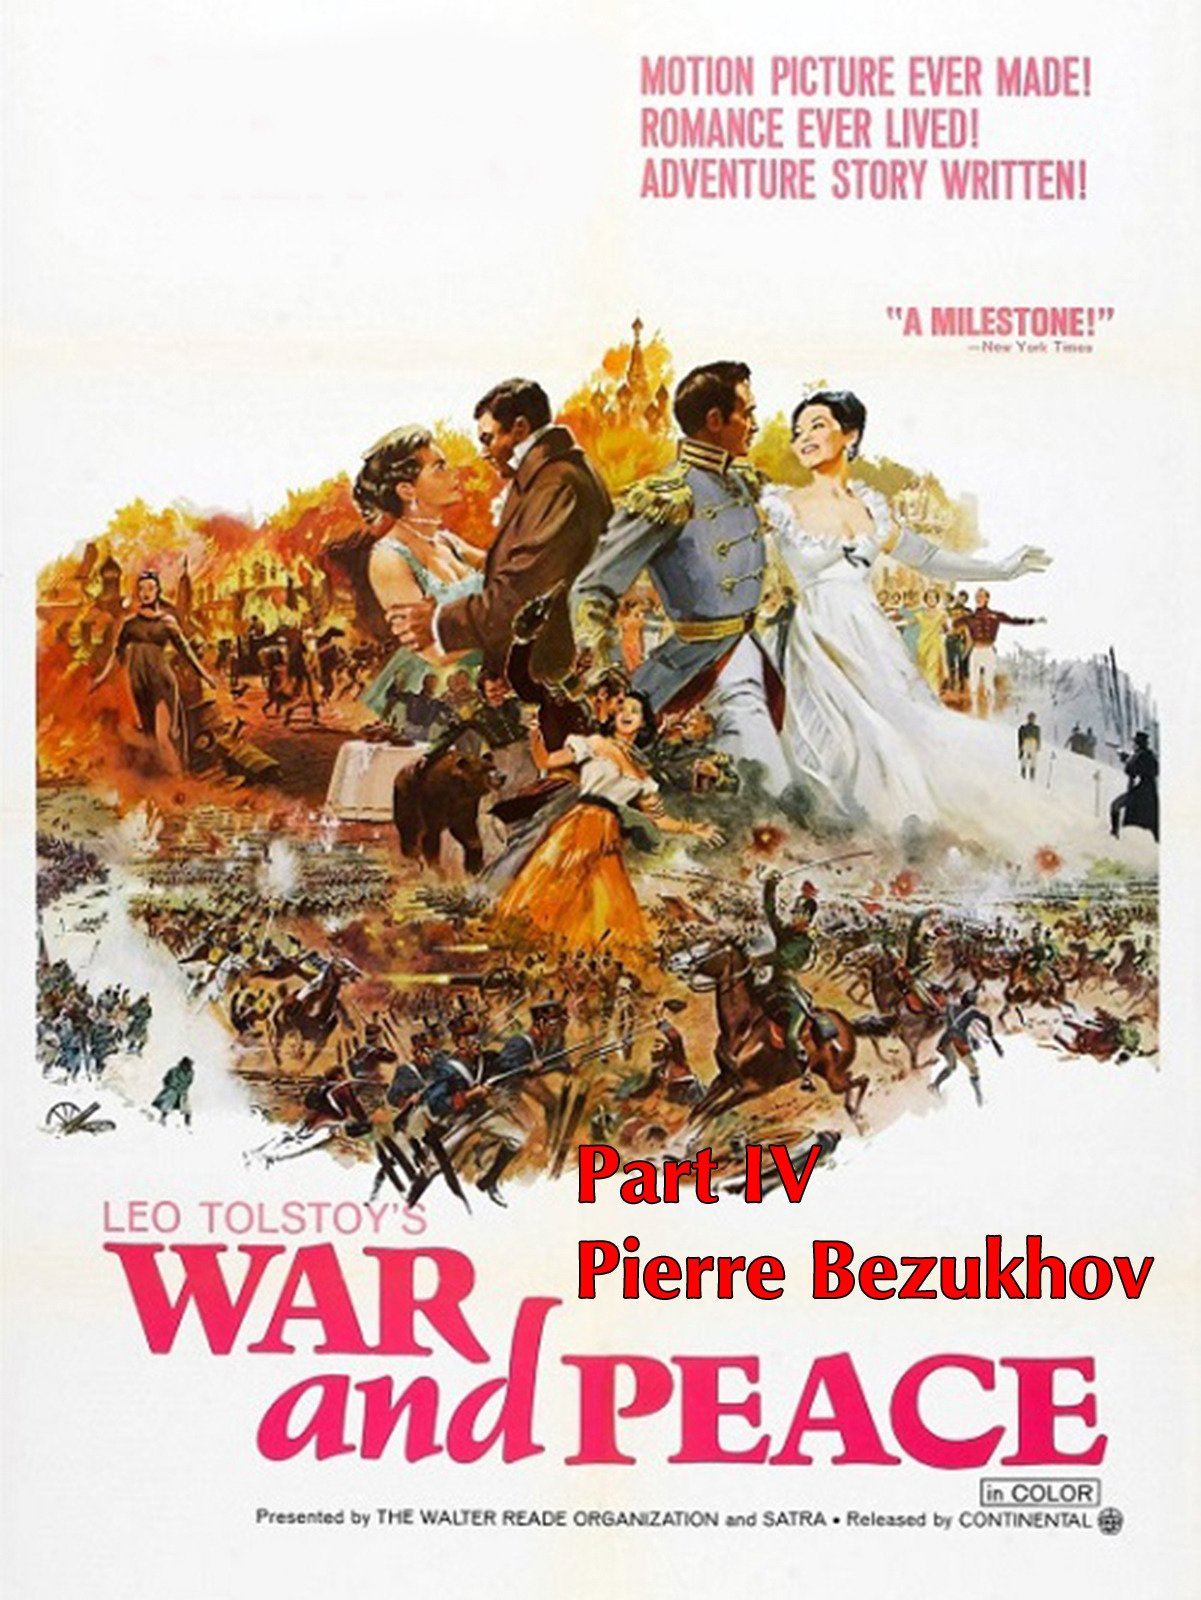 War and Peace: Part IV Pierre Bezukhov on Amazon Prime Video UK